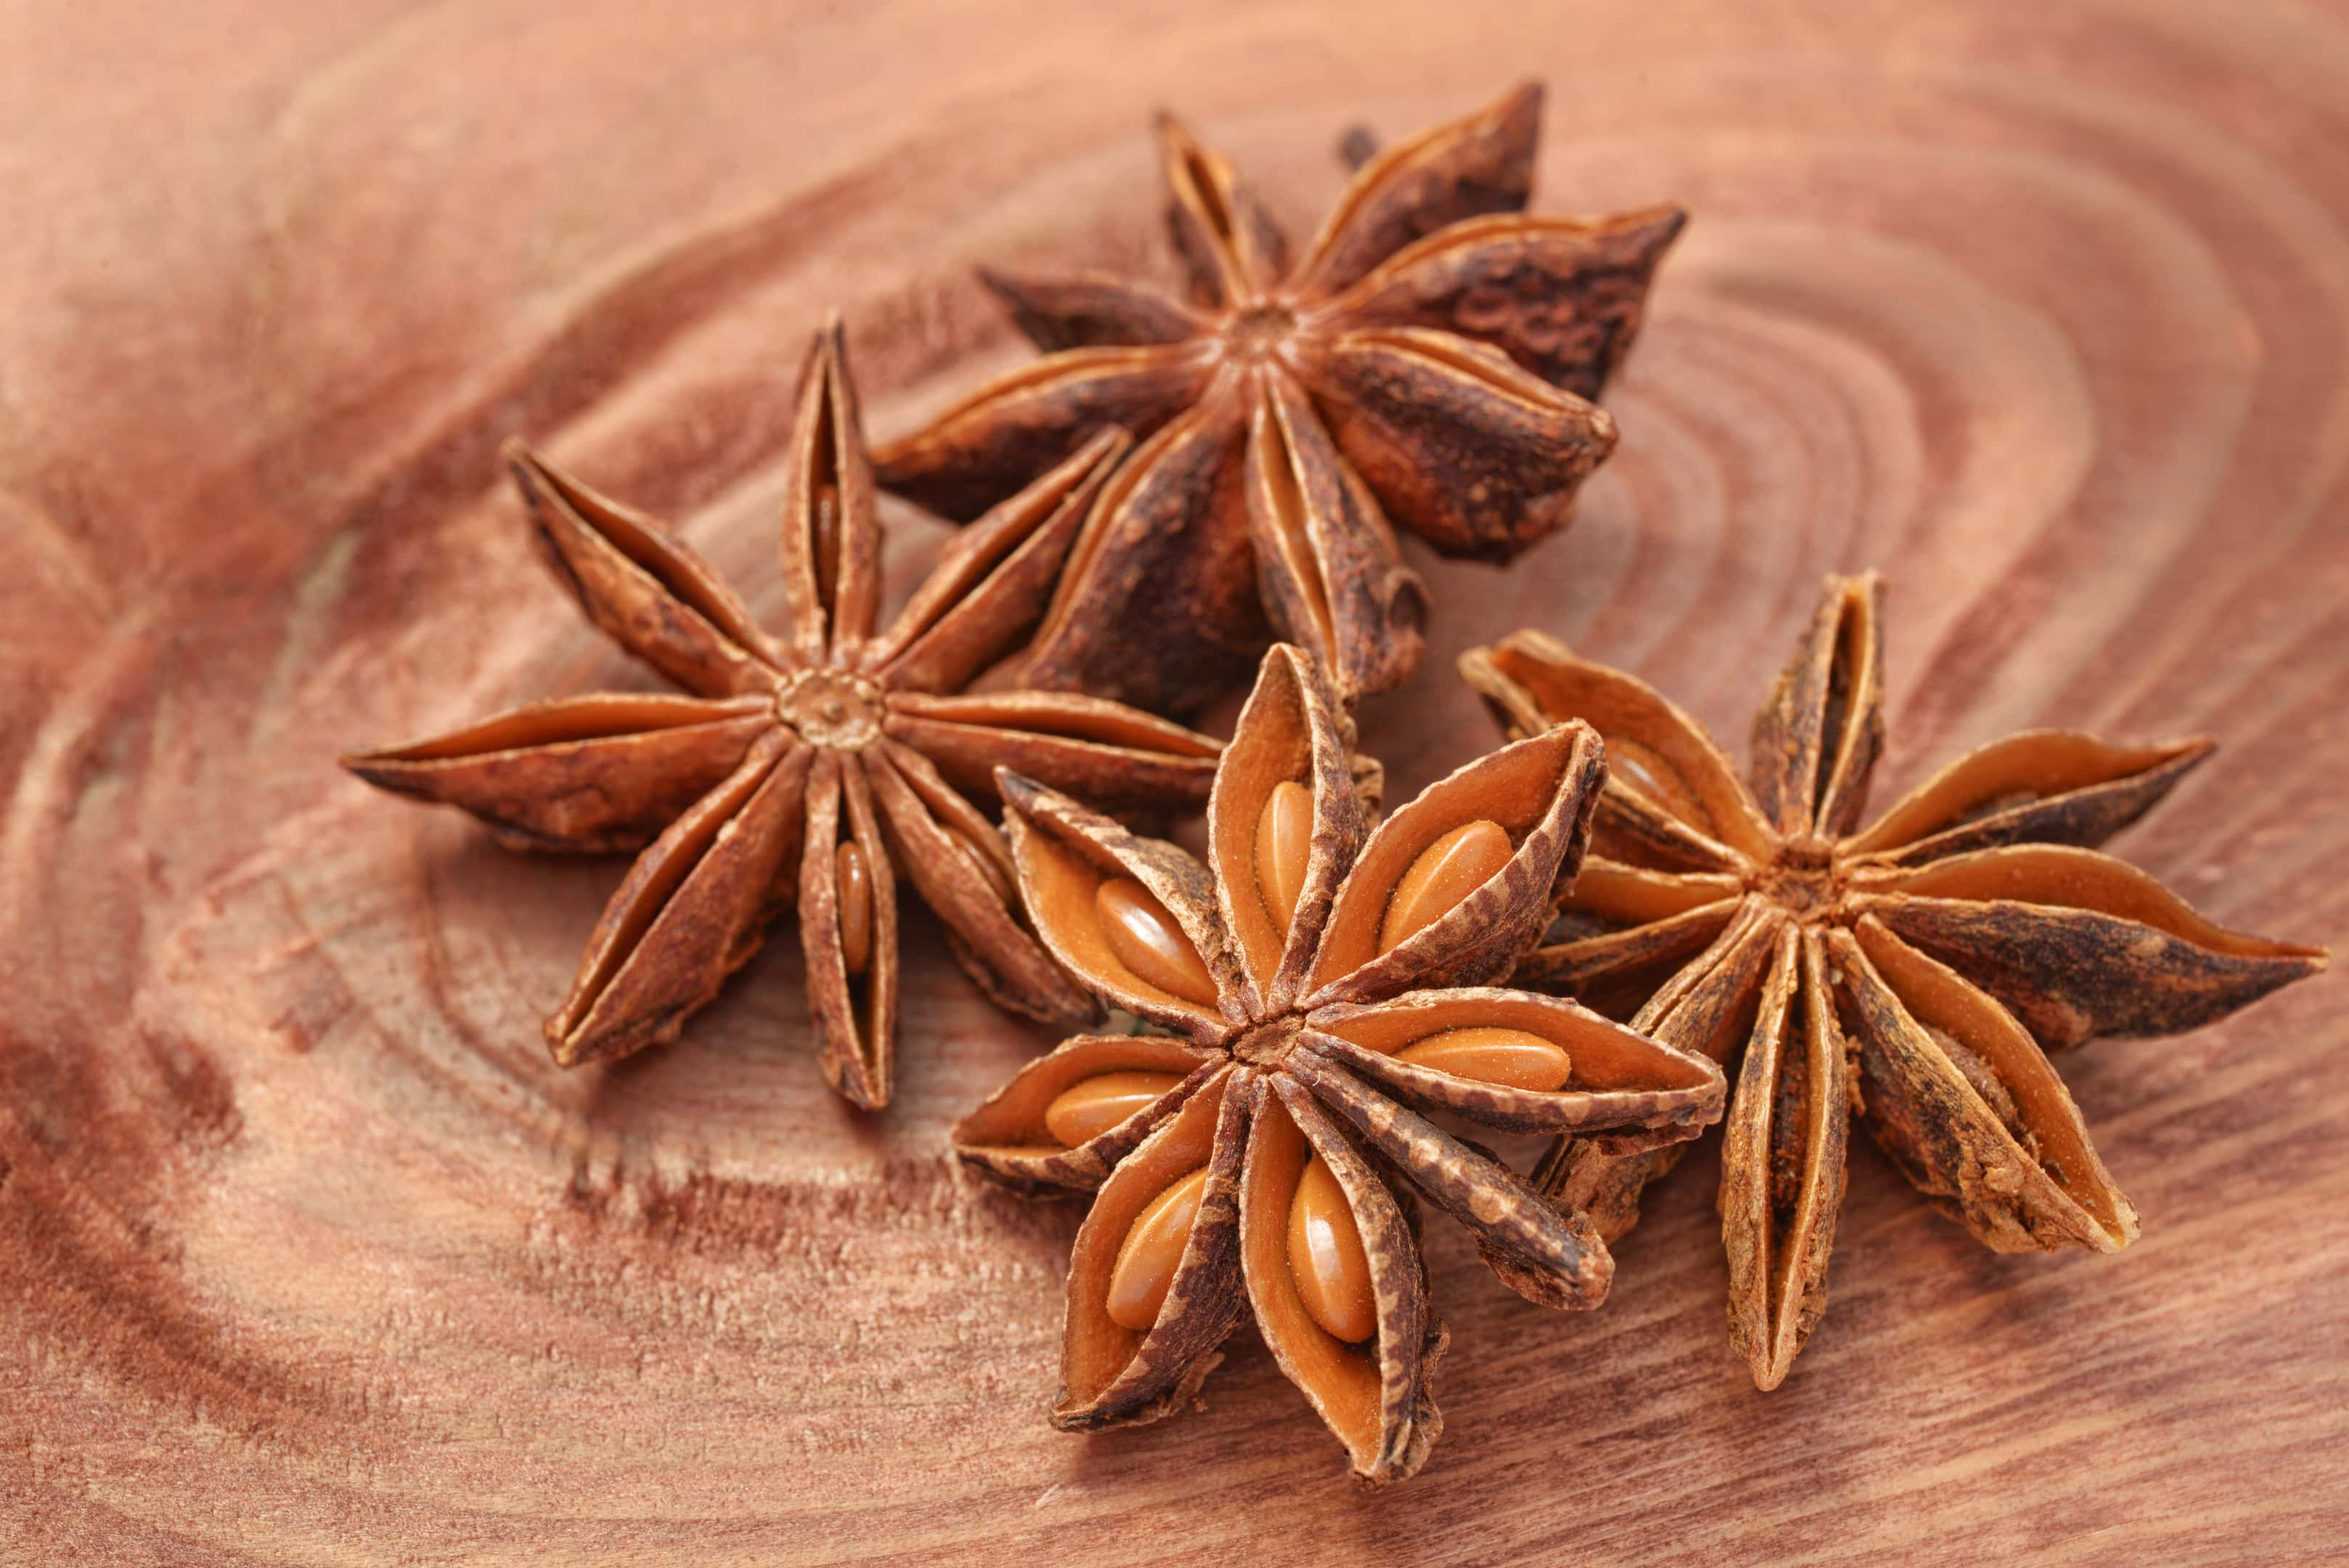 Anise star with anise seeds on wood